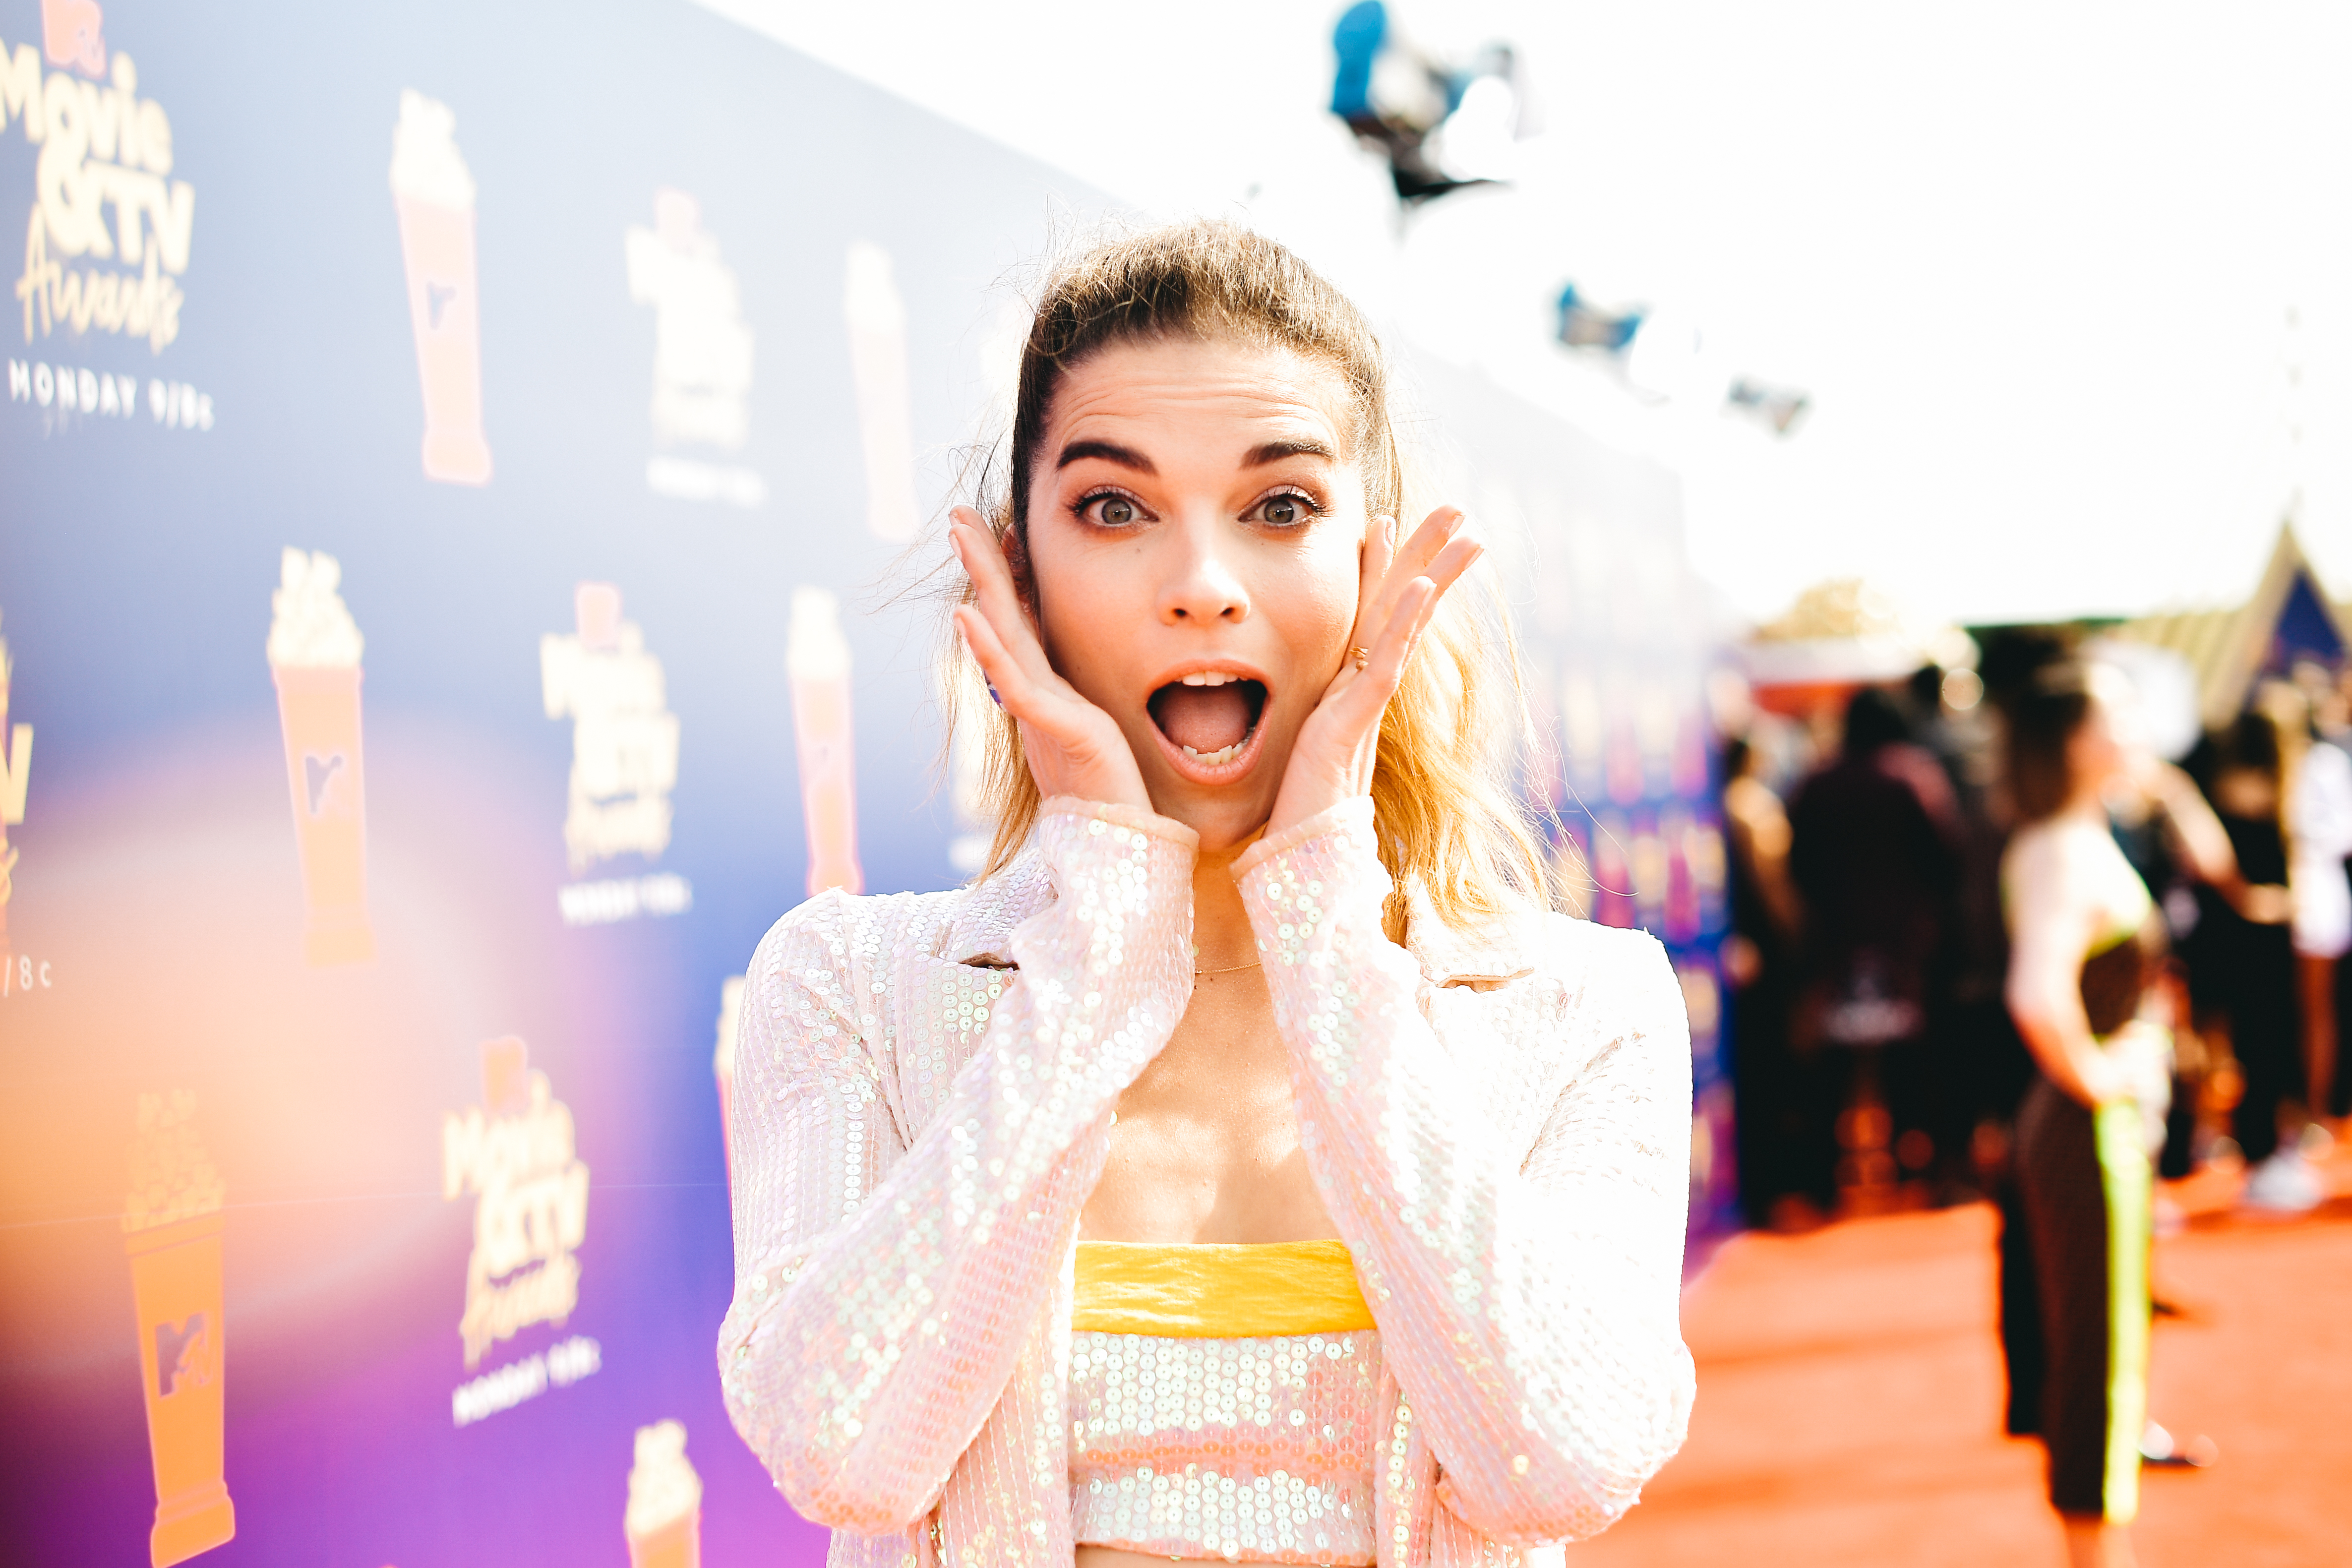 SANTA MONICA, CALIFORNIA - JUNE 15: (EDITORS NOTE: Image has been processed using digital filters)  Annie Murphy attends the 2019 MTV Movie and TV Awards. at Barker Hangar on June 15, 2019 in Santa Monica, California. (Photo by Matt Winkelmeyer/Getty Images for MTV)